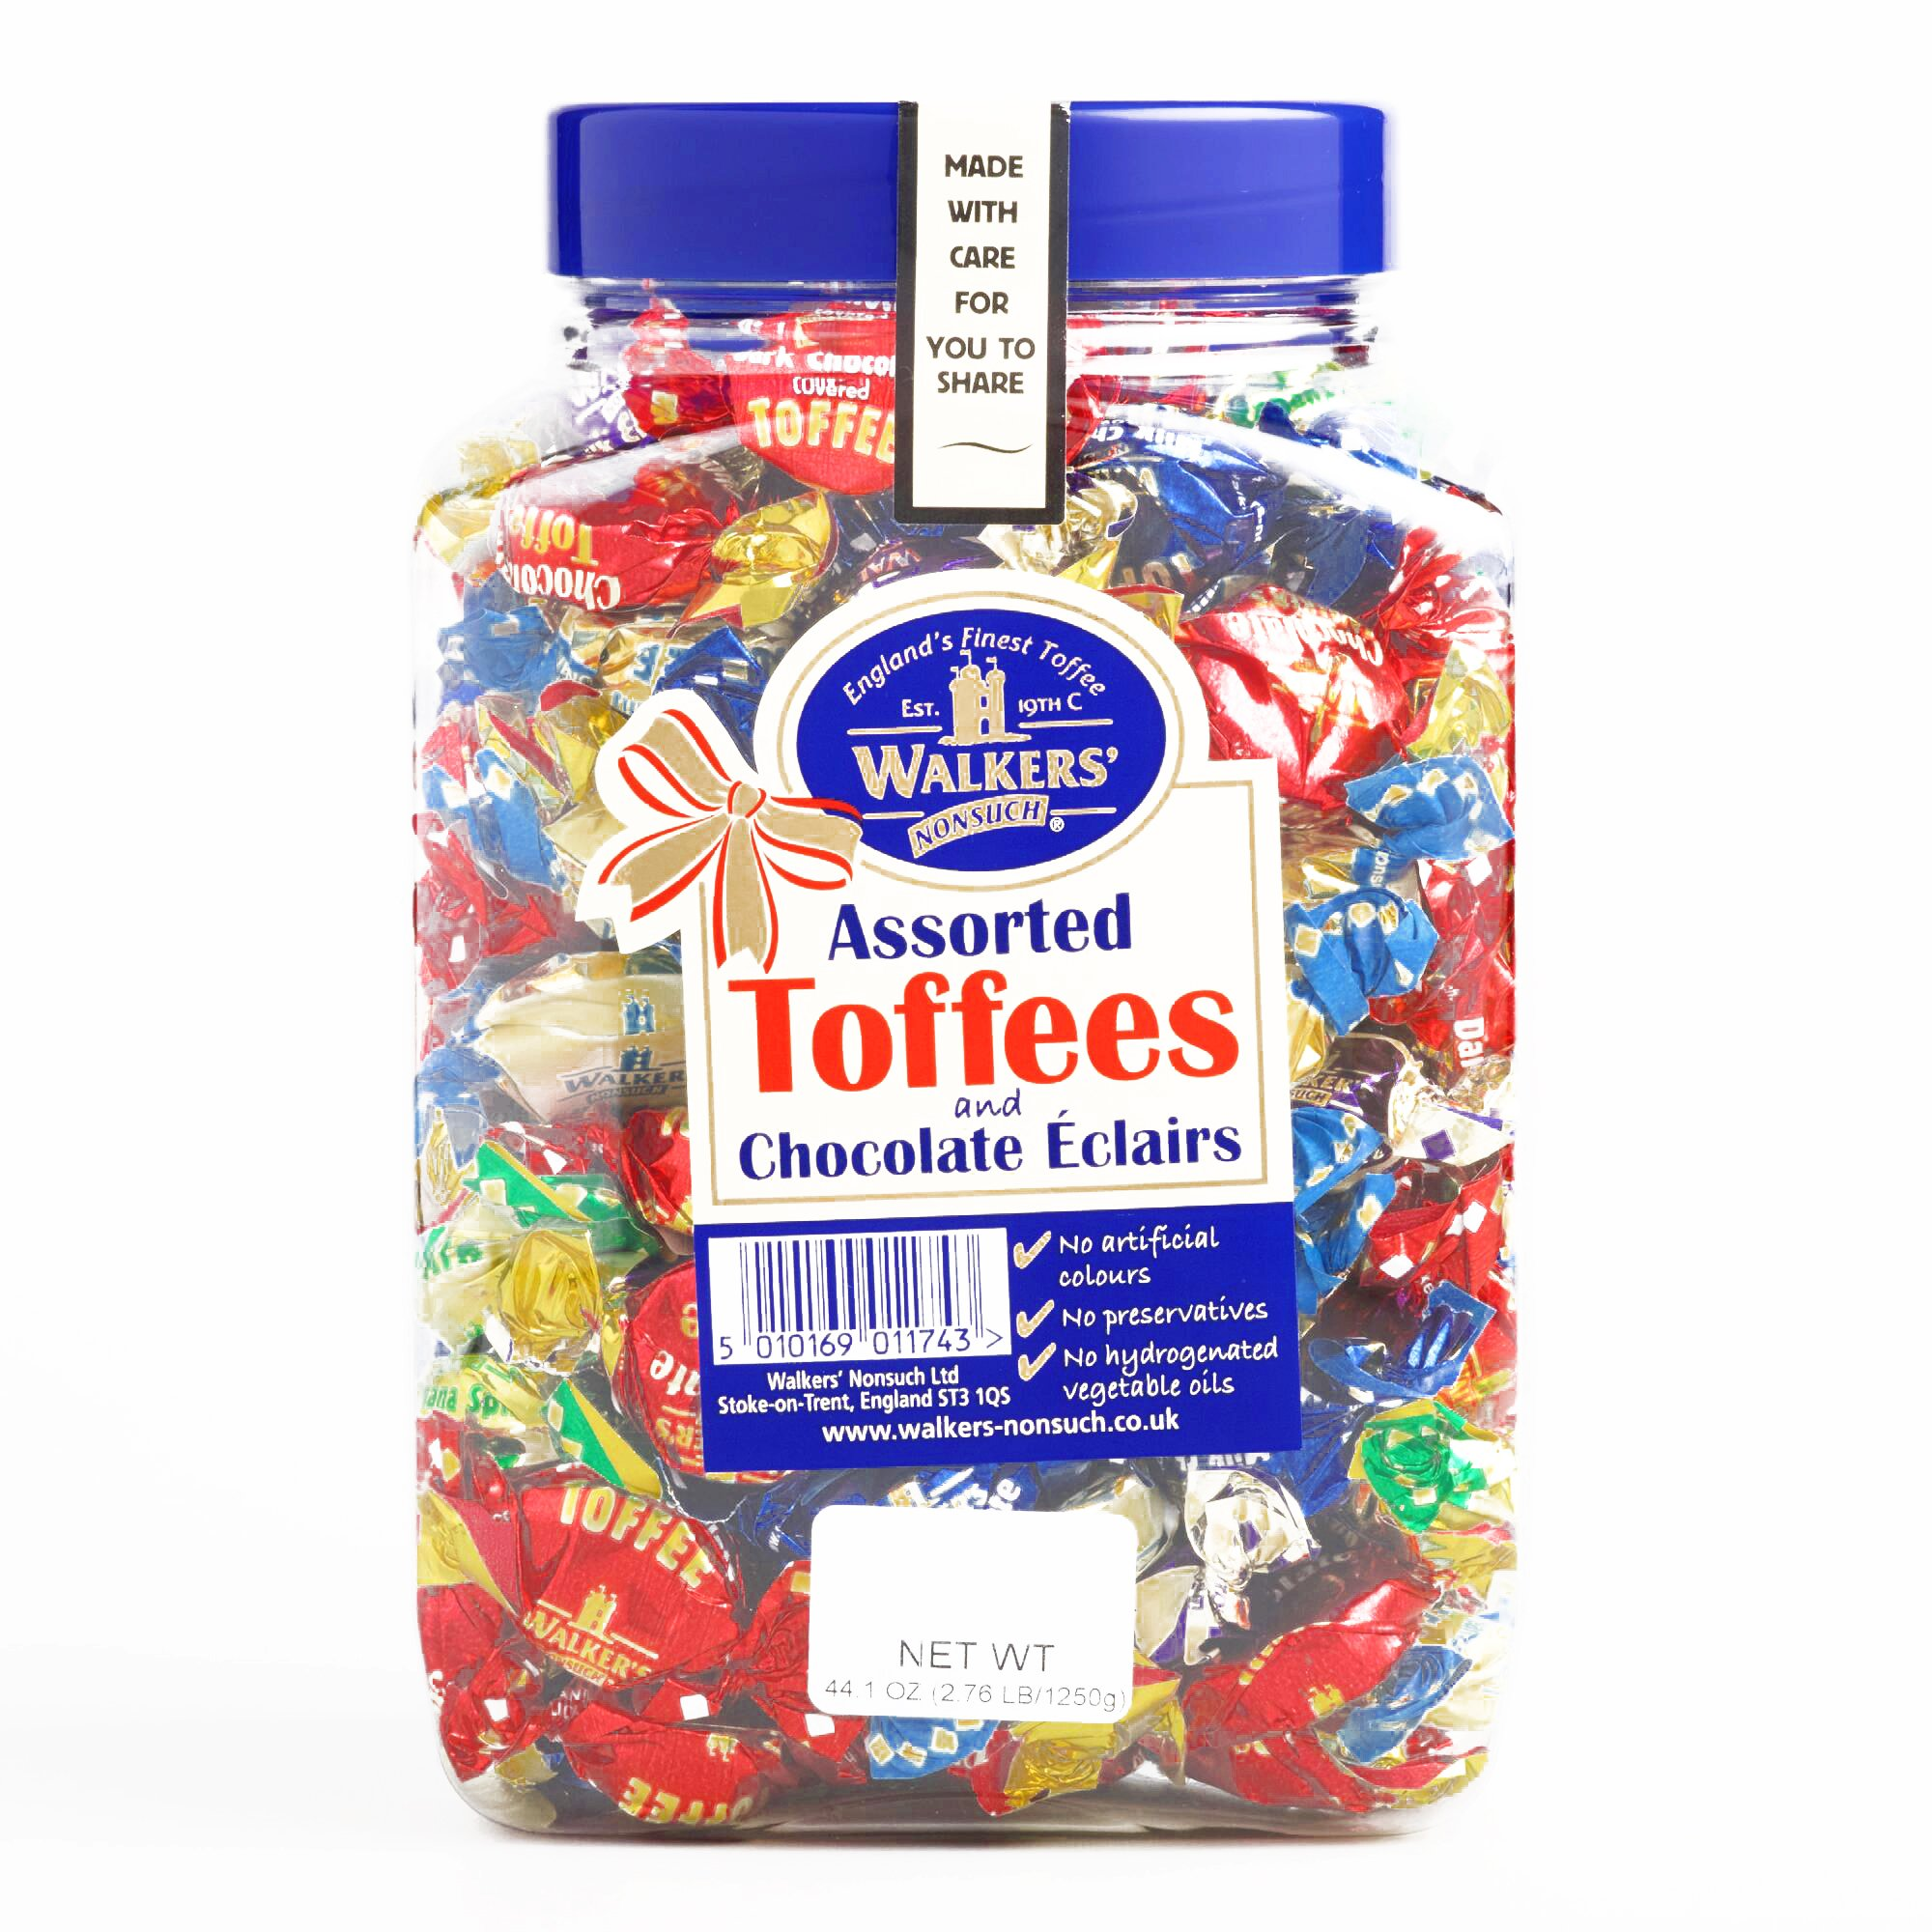 Walkers Toffee and Eclair Tub - Gourmet Christmas Gift for the Holidays (1 Item per Order, Not per Case) by Walkers Toffee